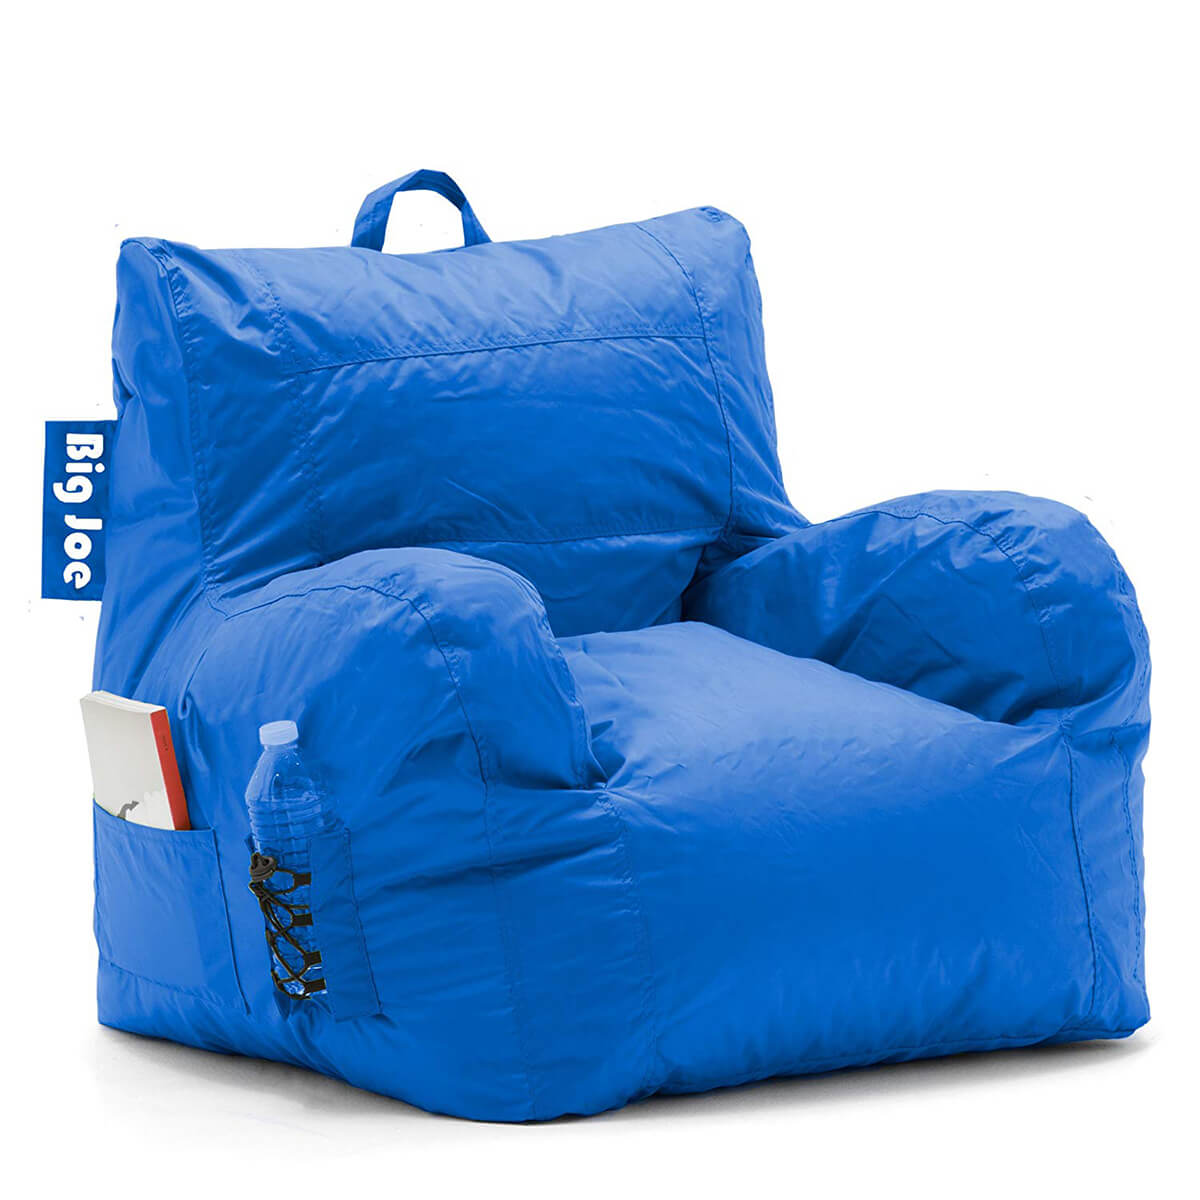 Big Joe Dorm Bean Bag Chair in Sapphire